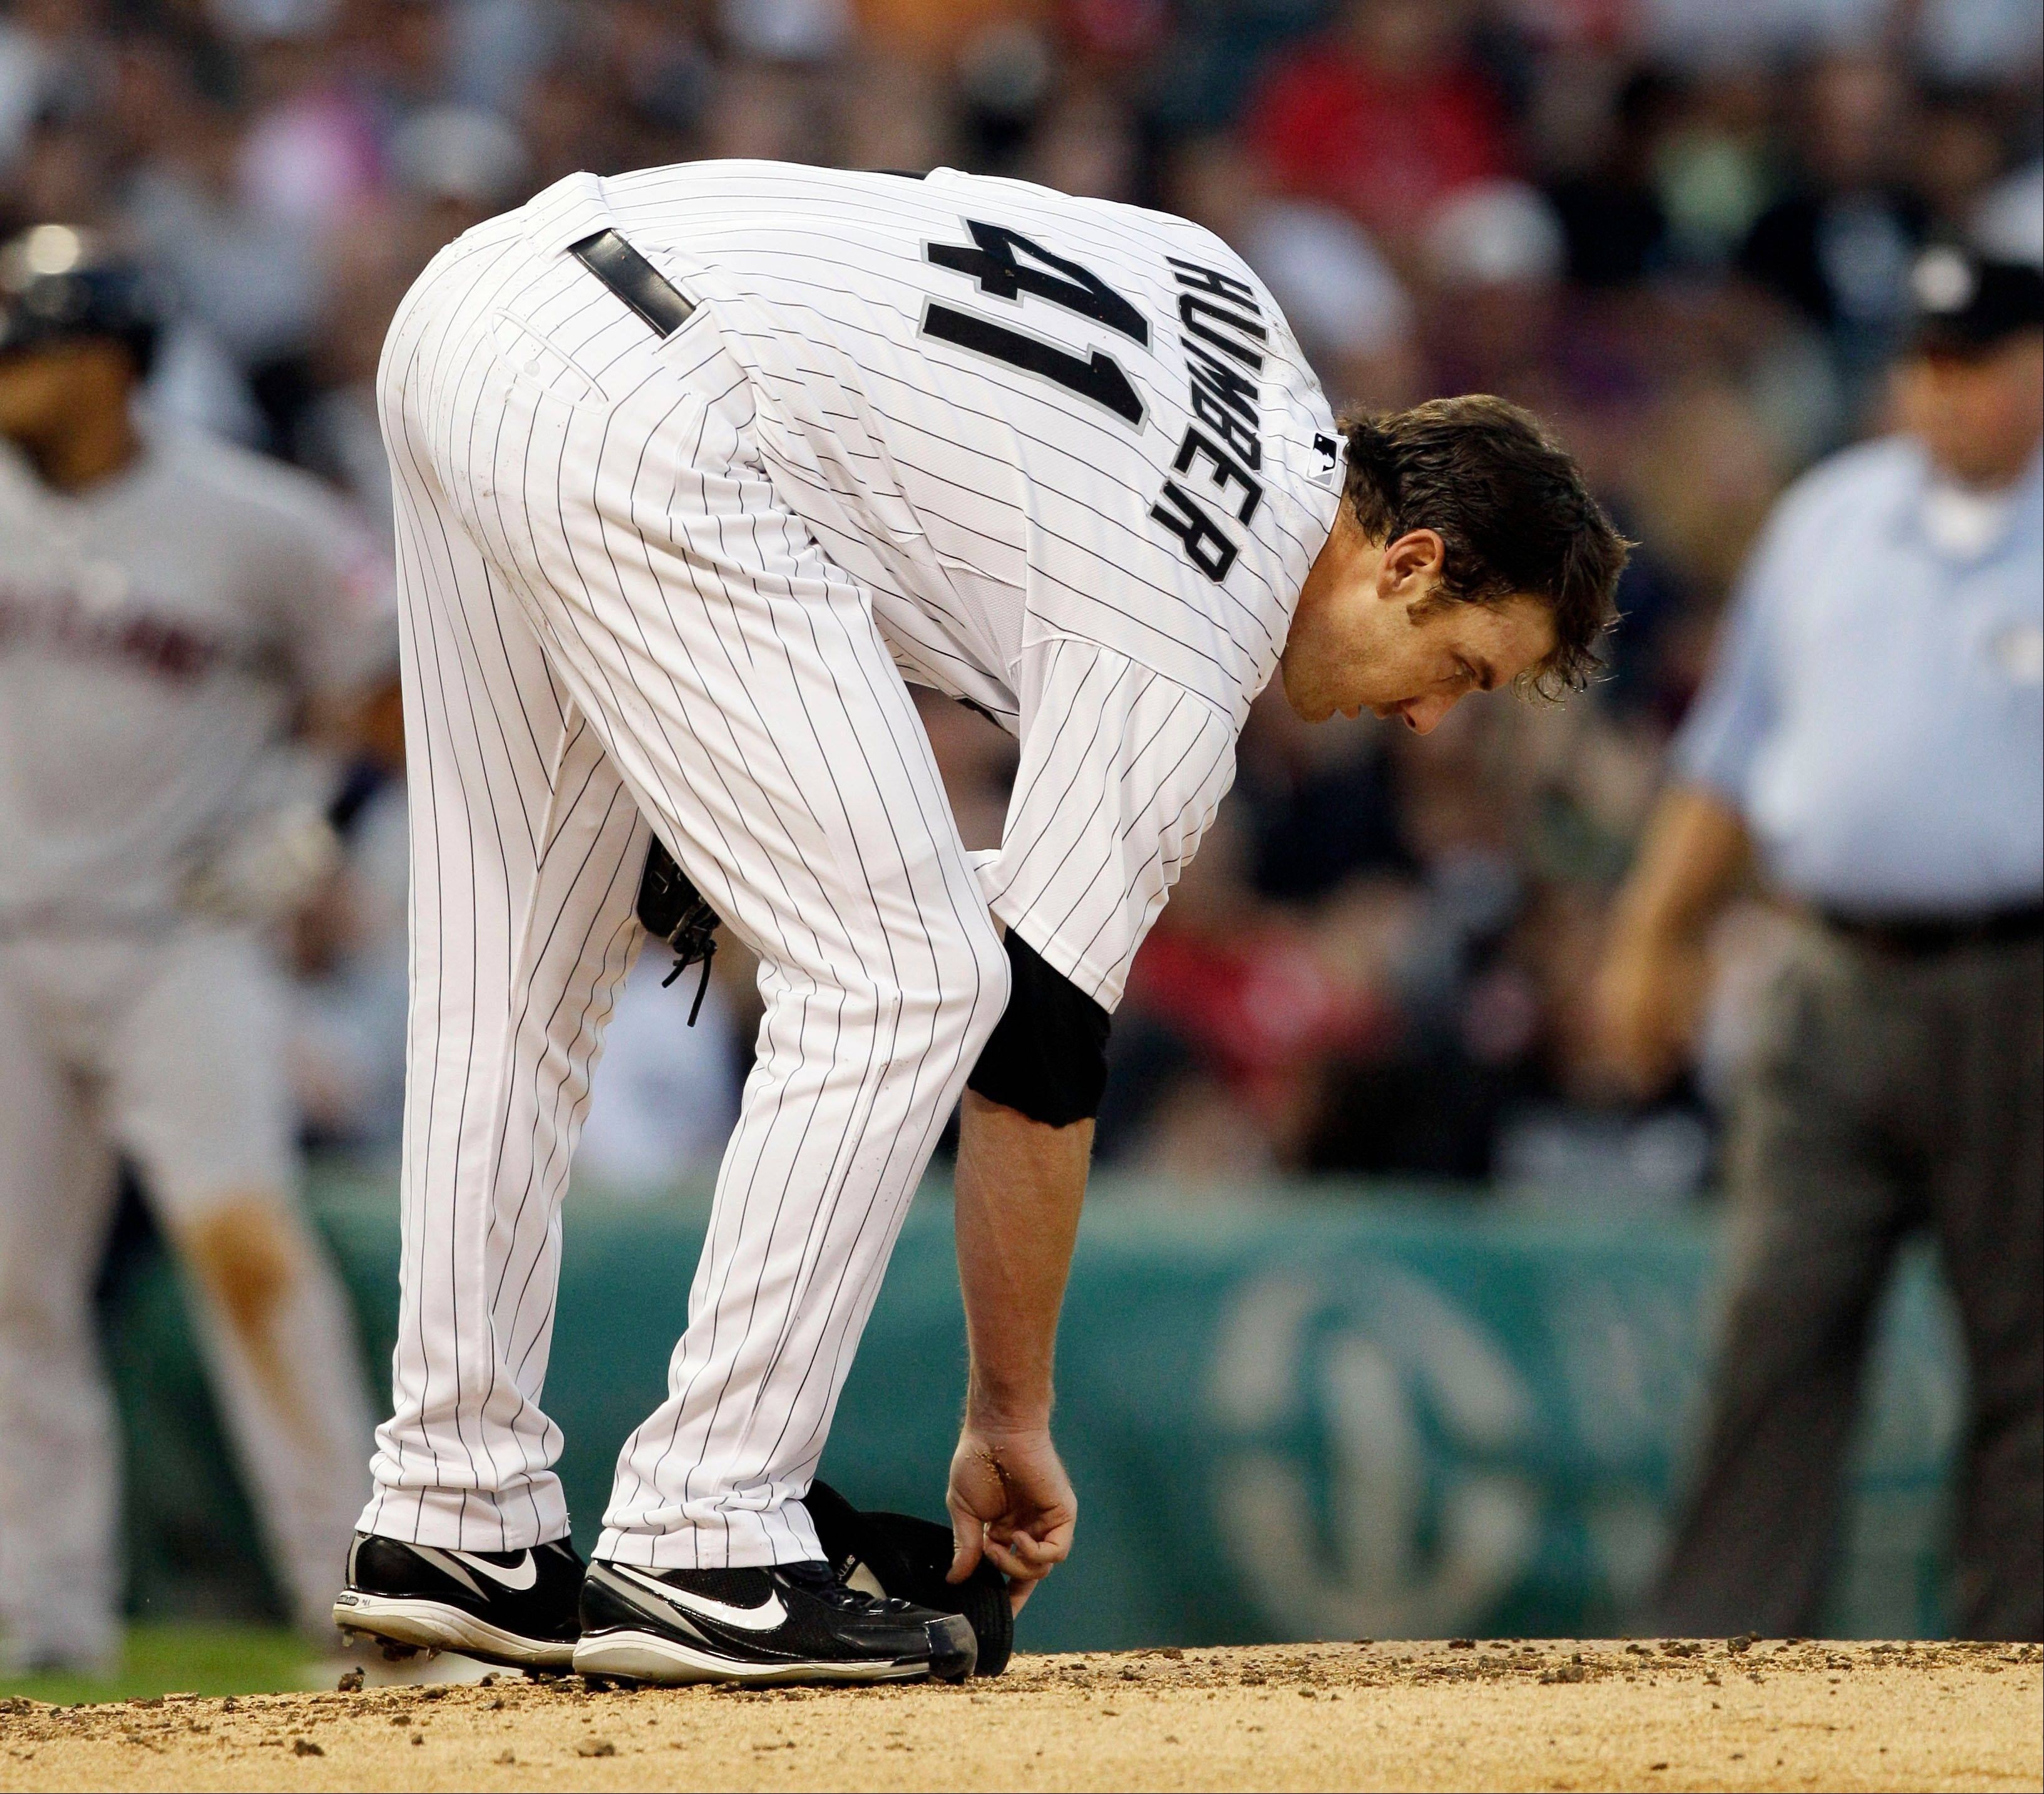 White Sox starter Phil Humber grabs his baseball cap after being hit by line drive off the bat of Cleveland Indians' Kosuke Fukudome during the second inning Thursday. The Sox placed Humber on the 15-day disabled list.